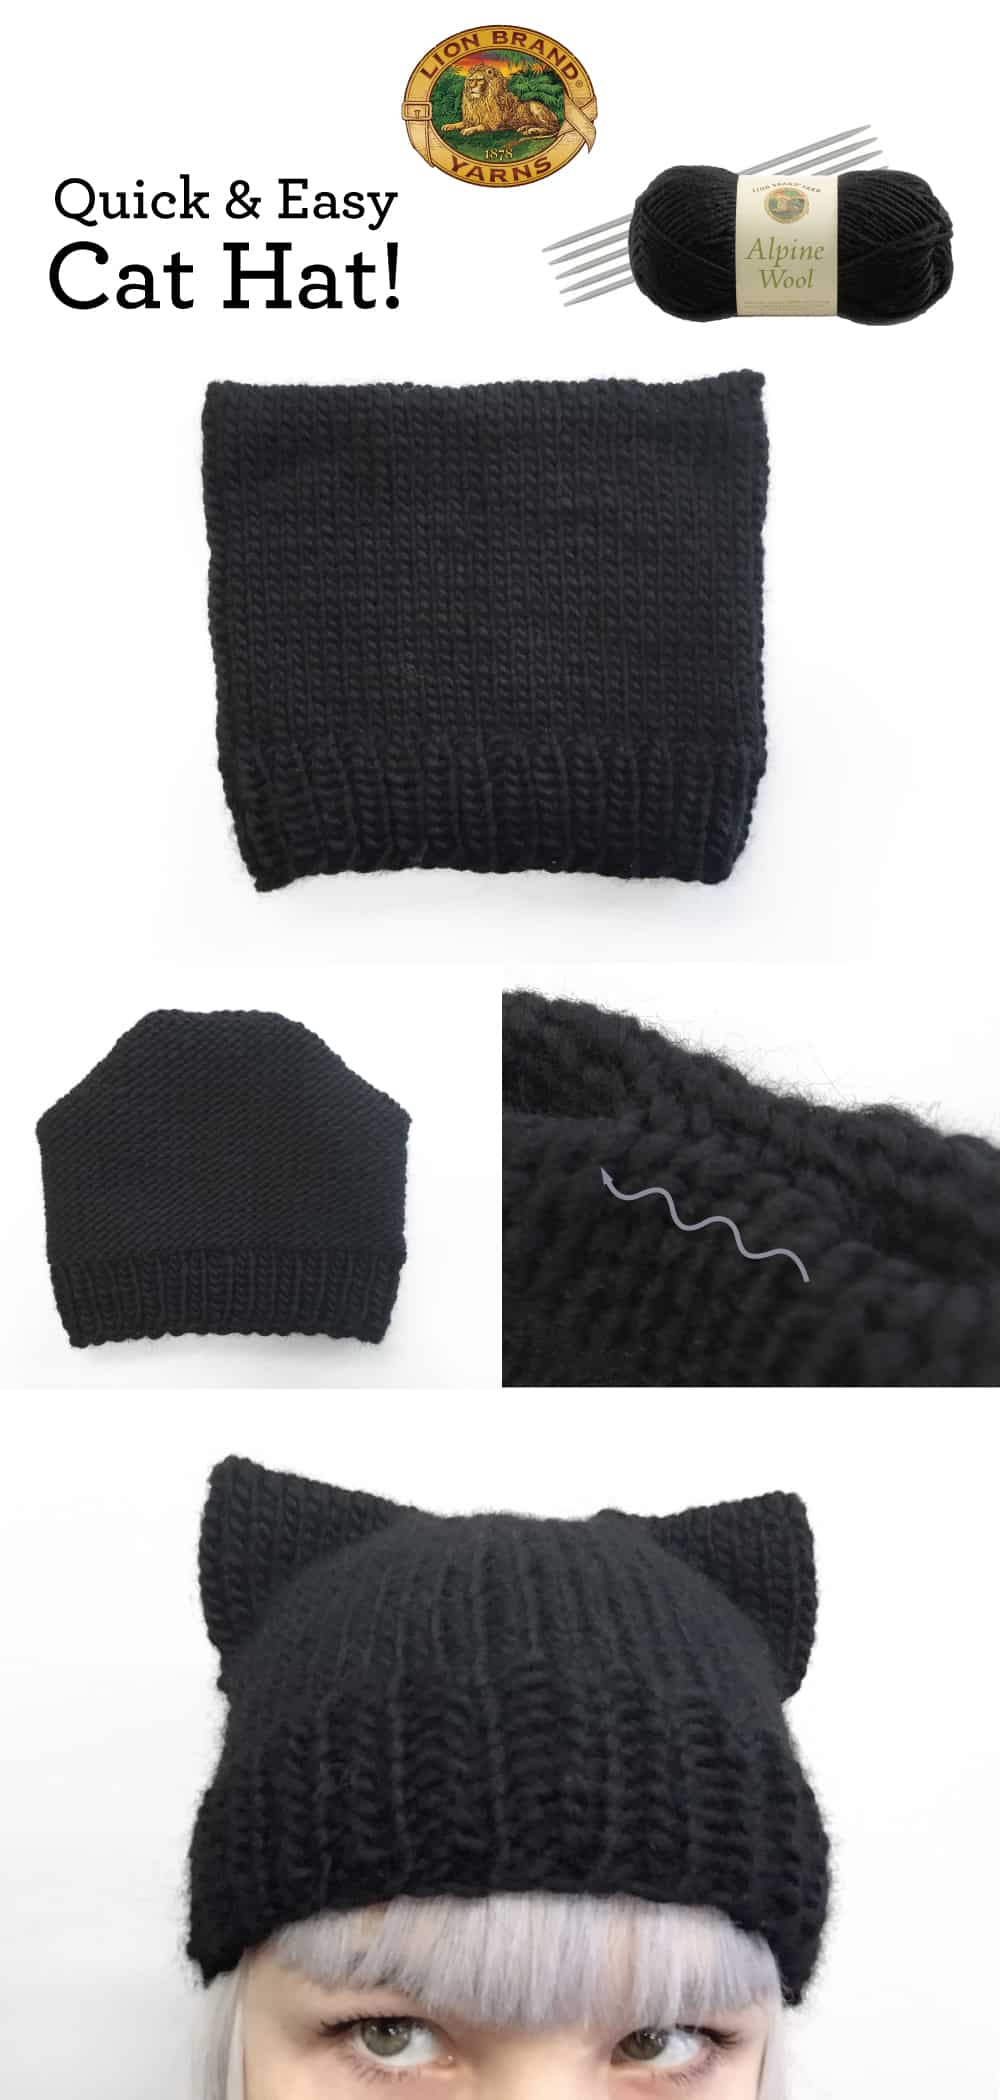 Quick and easy knitted cat hat